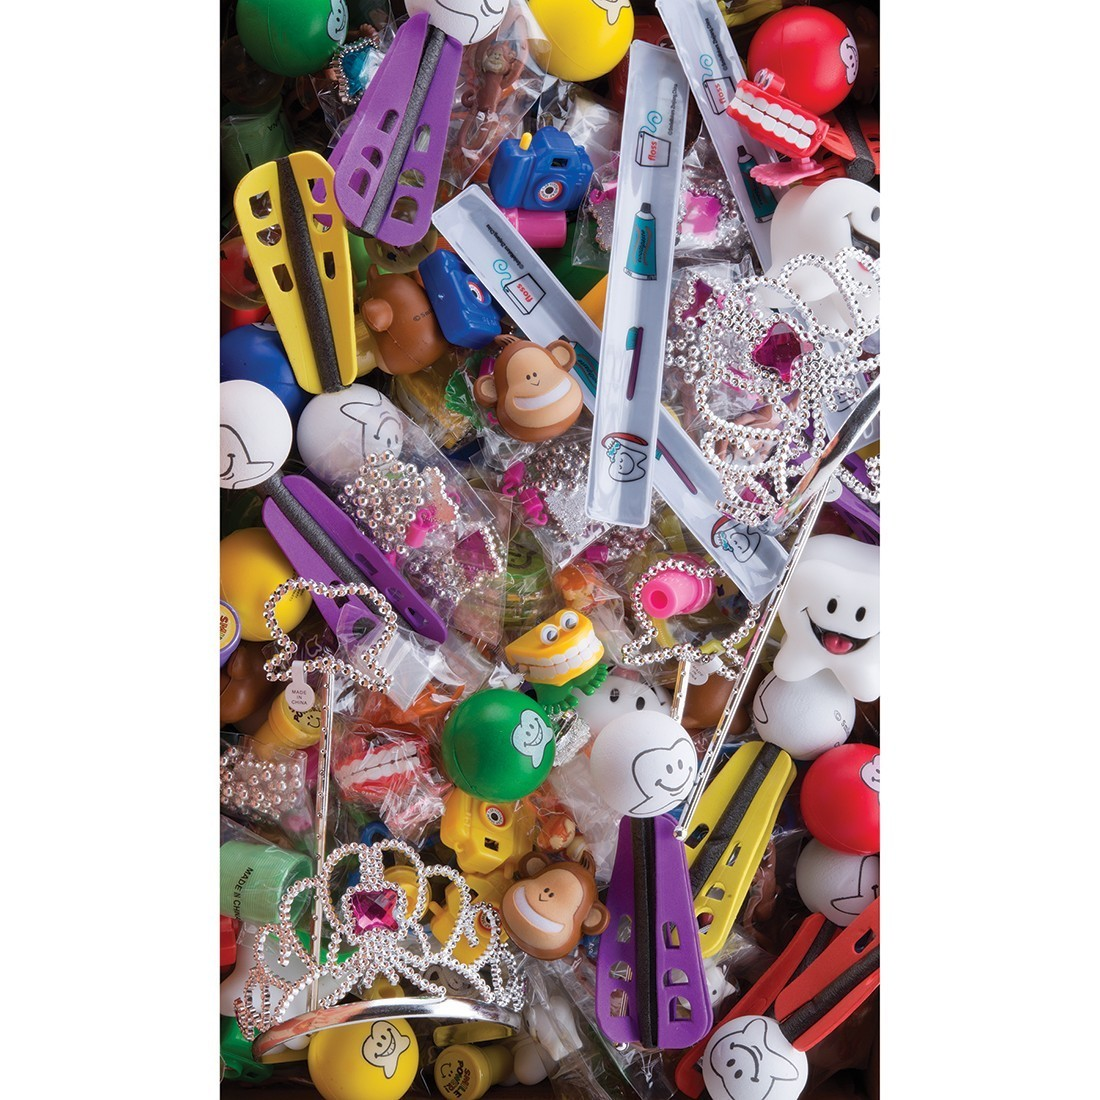 Super Sized Value Dental Toy Treasure Chest Refill [image]